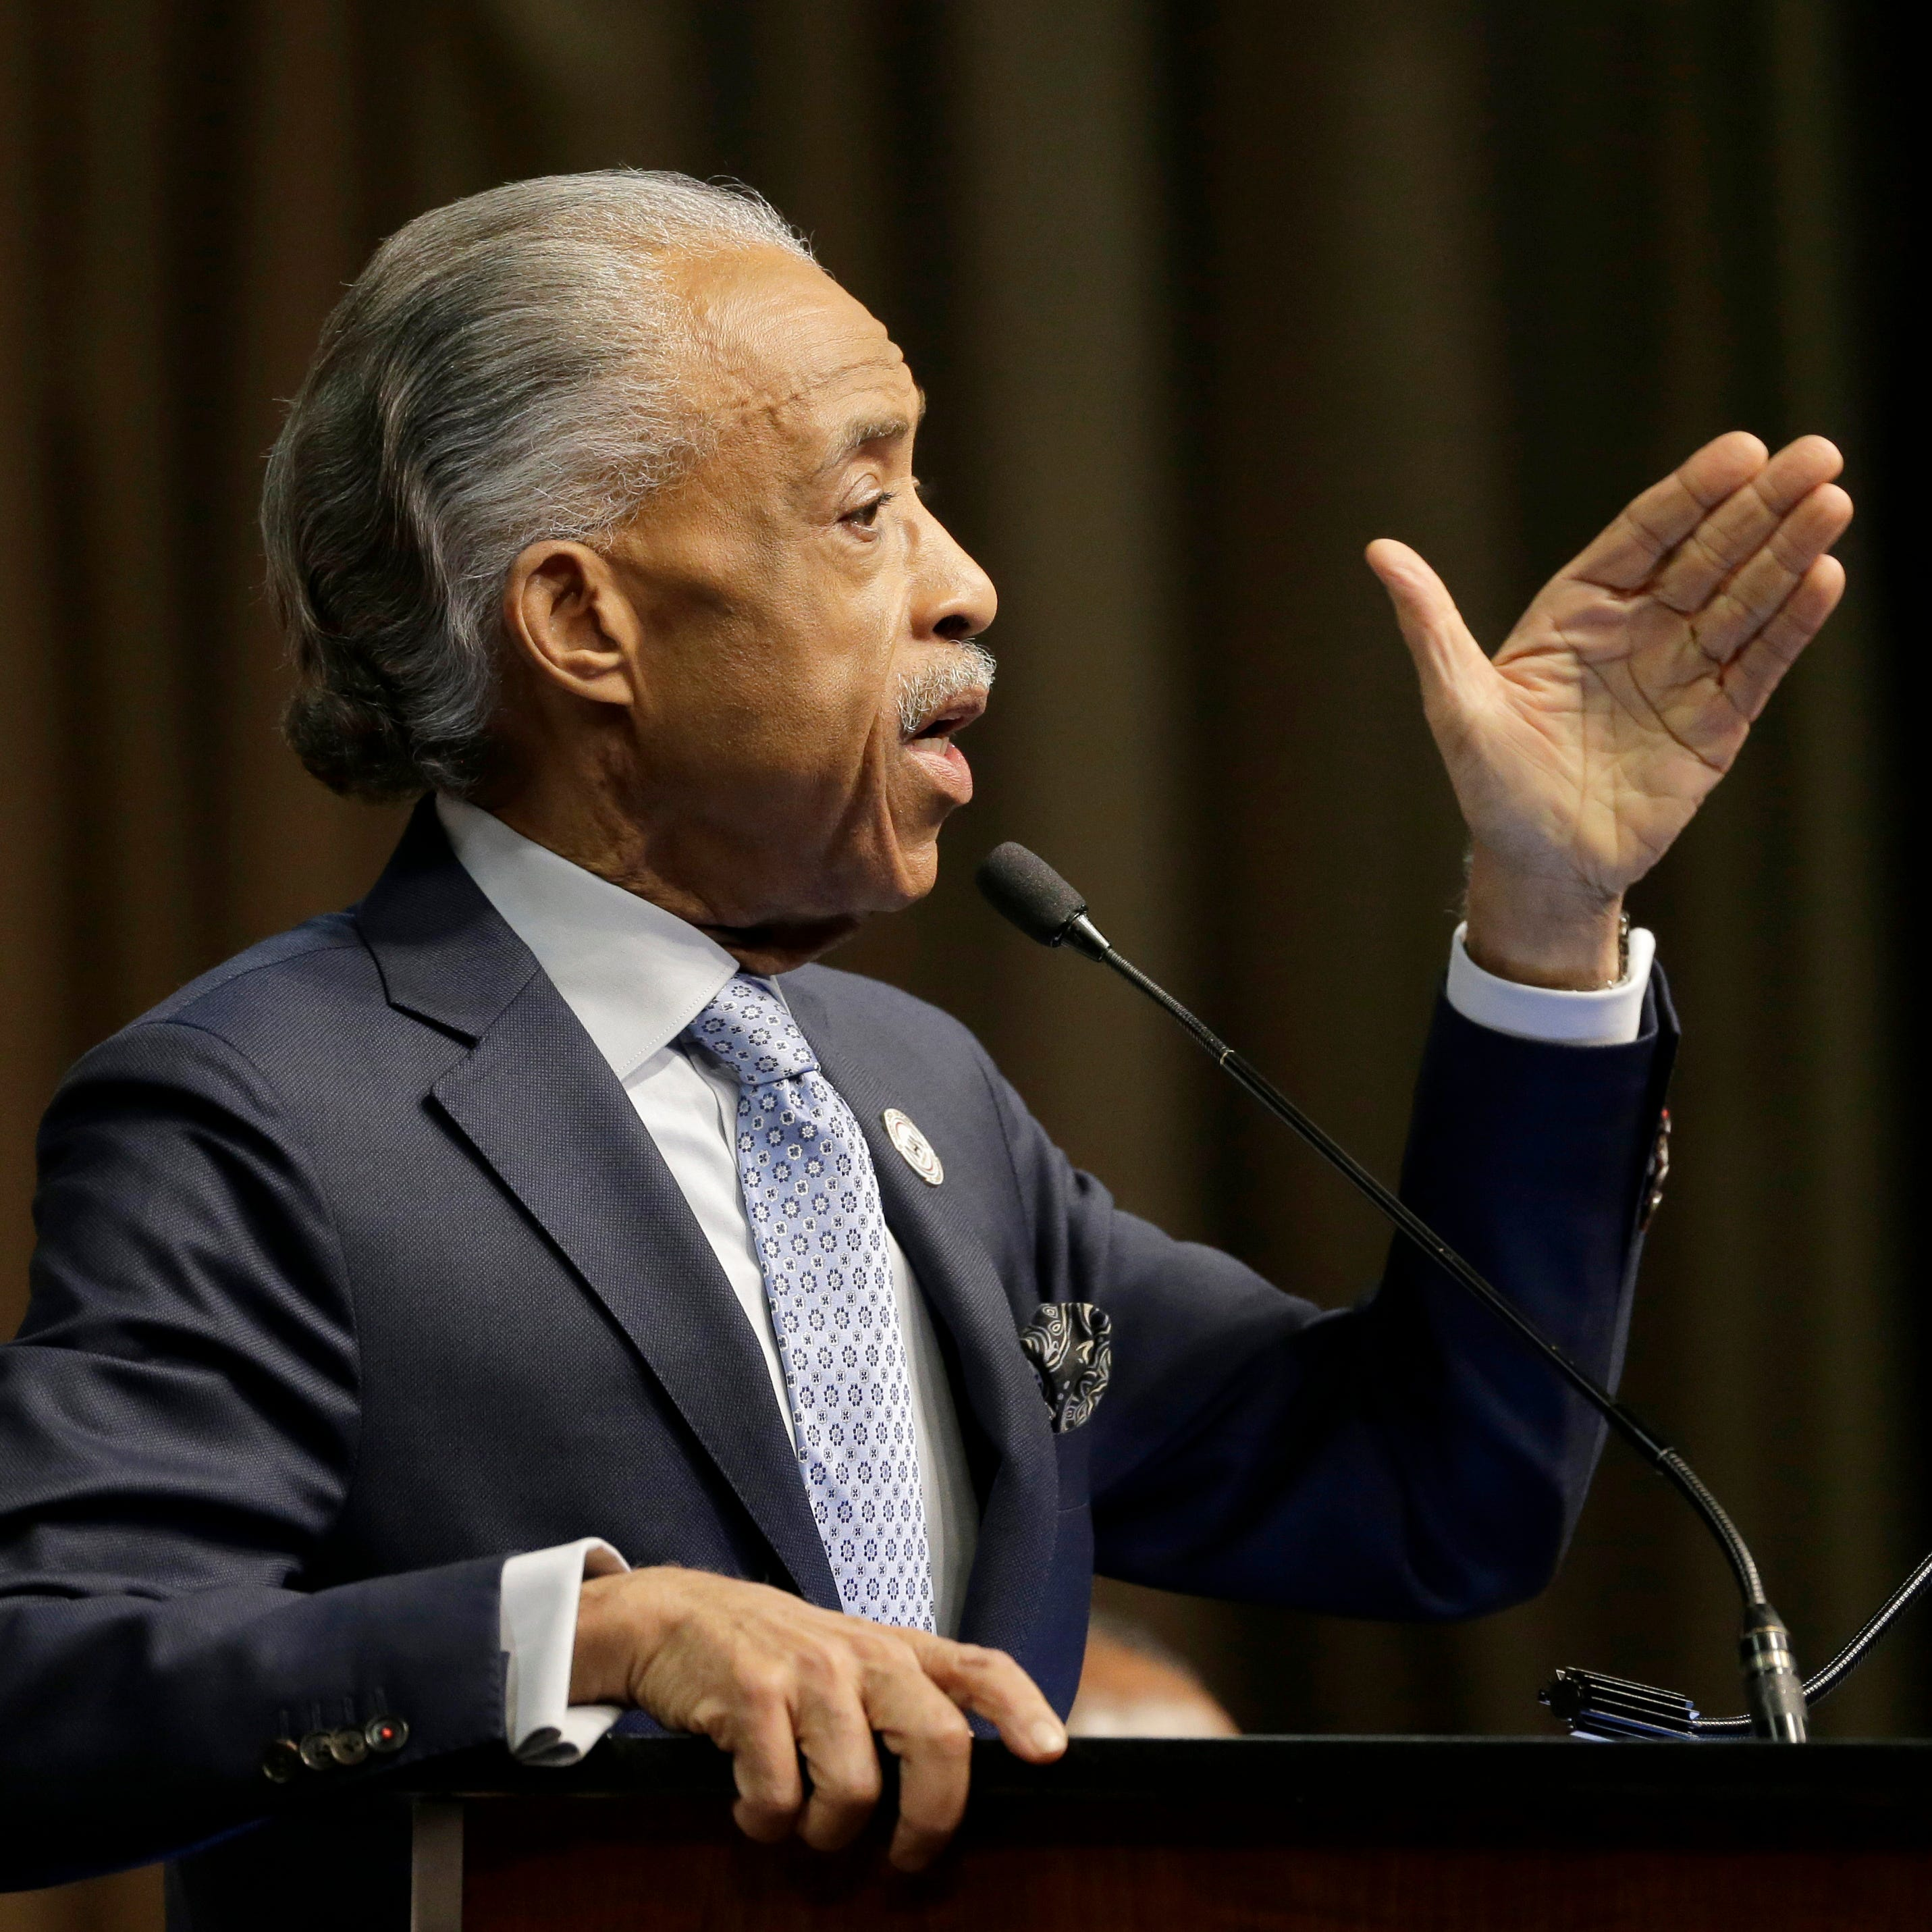 Opinion: Why are Democrats pandering to Al Sharpton?